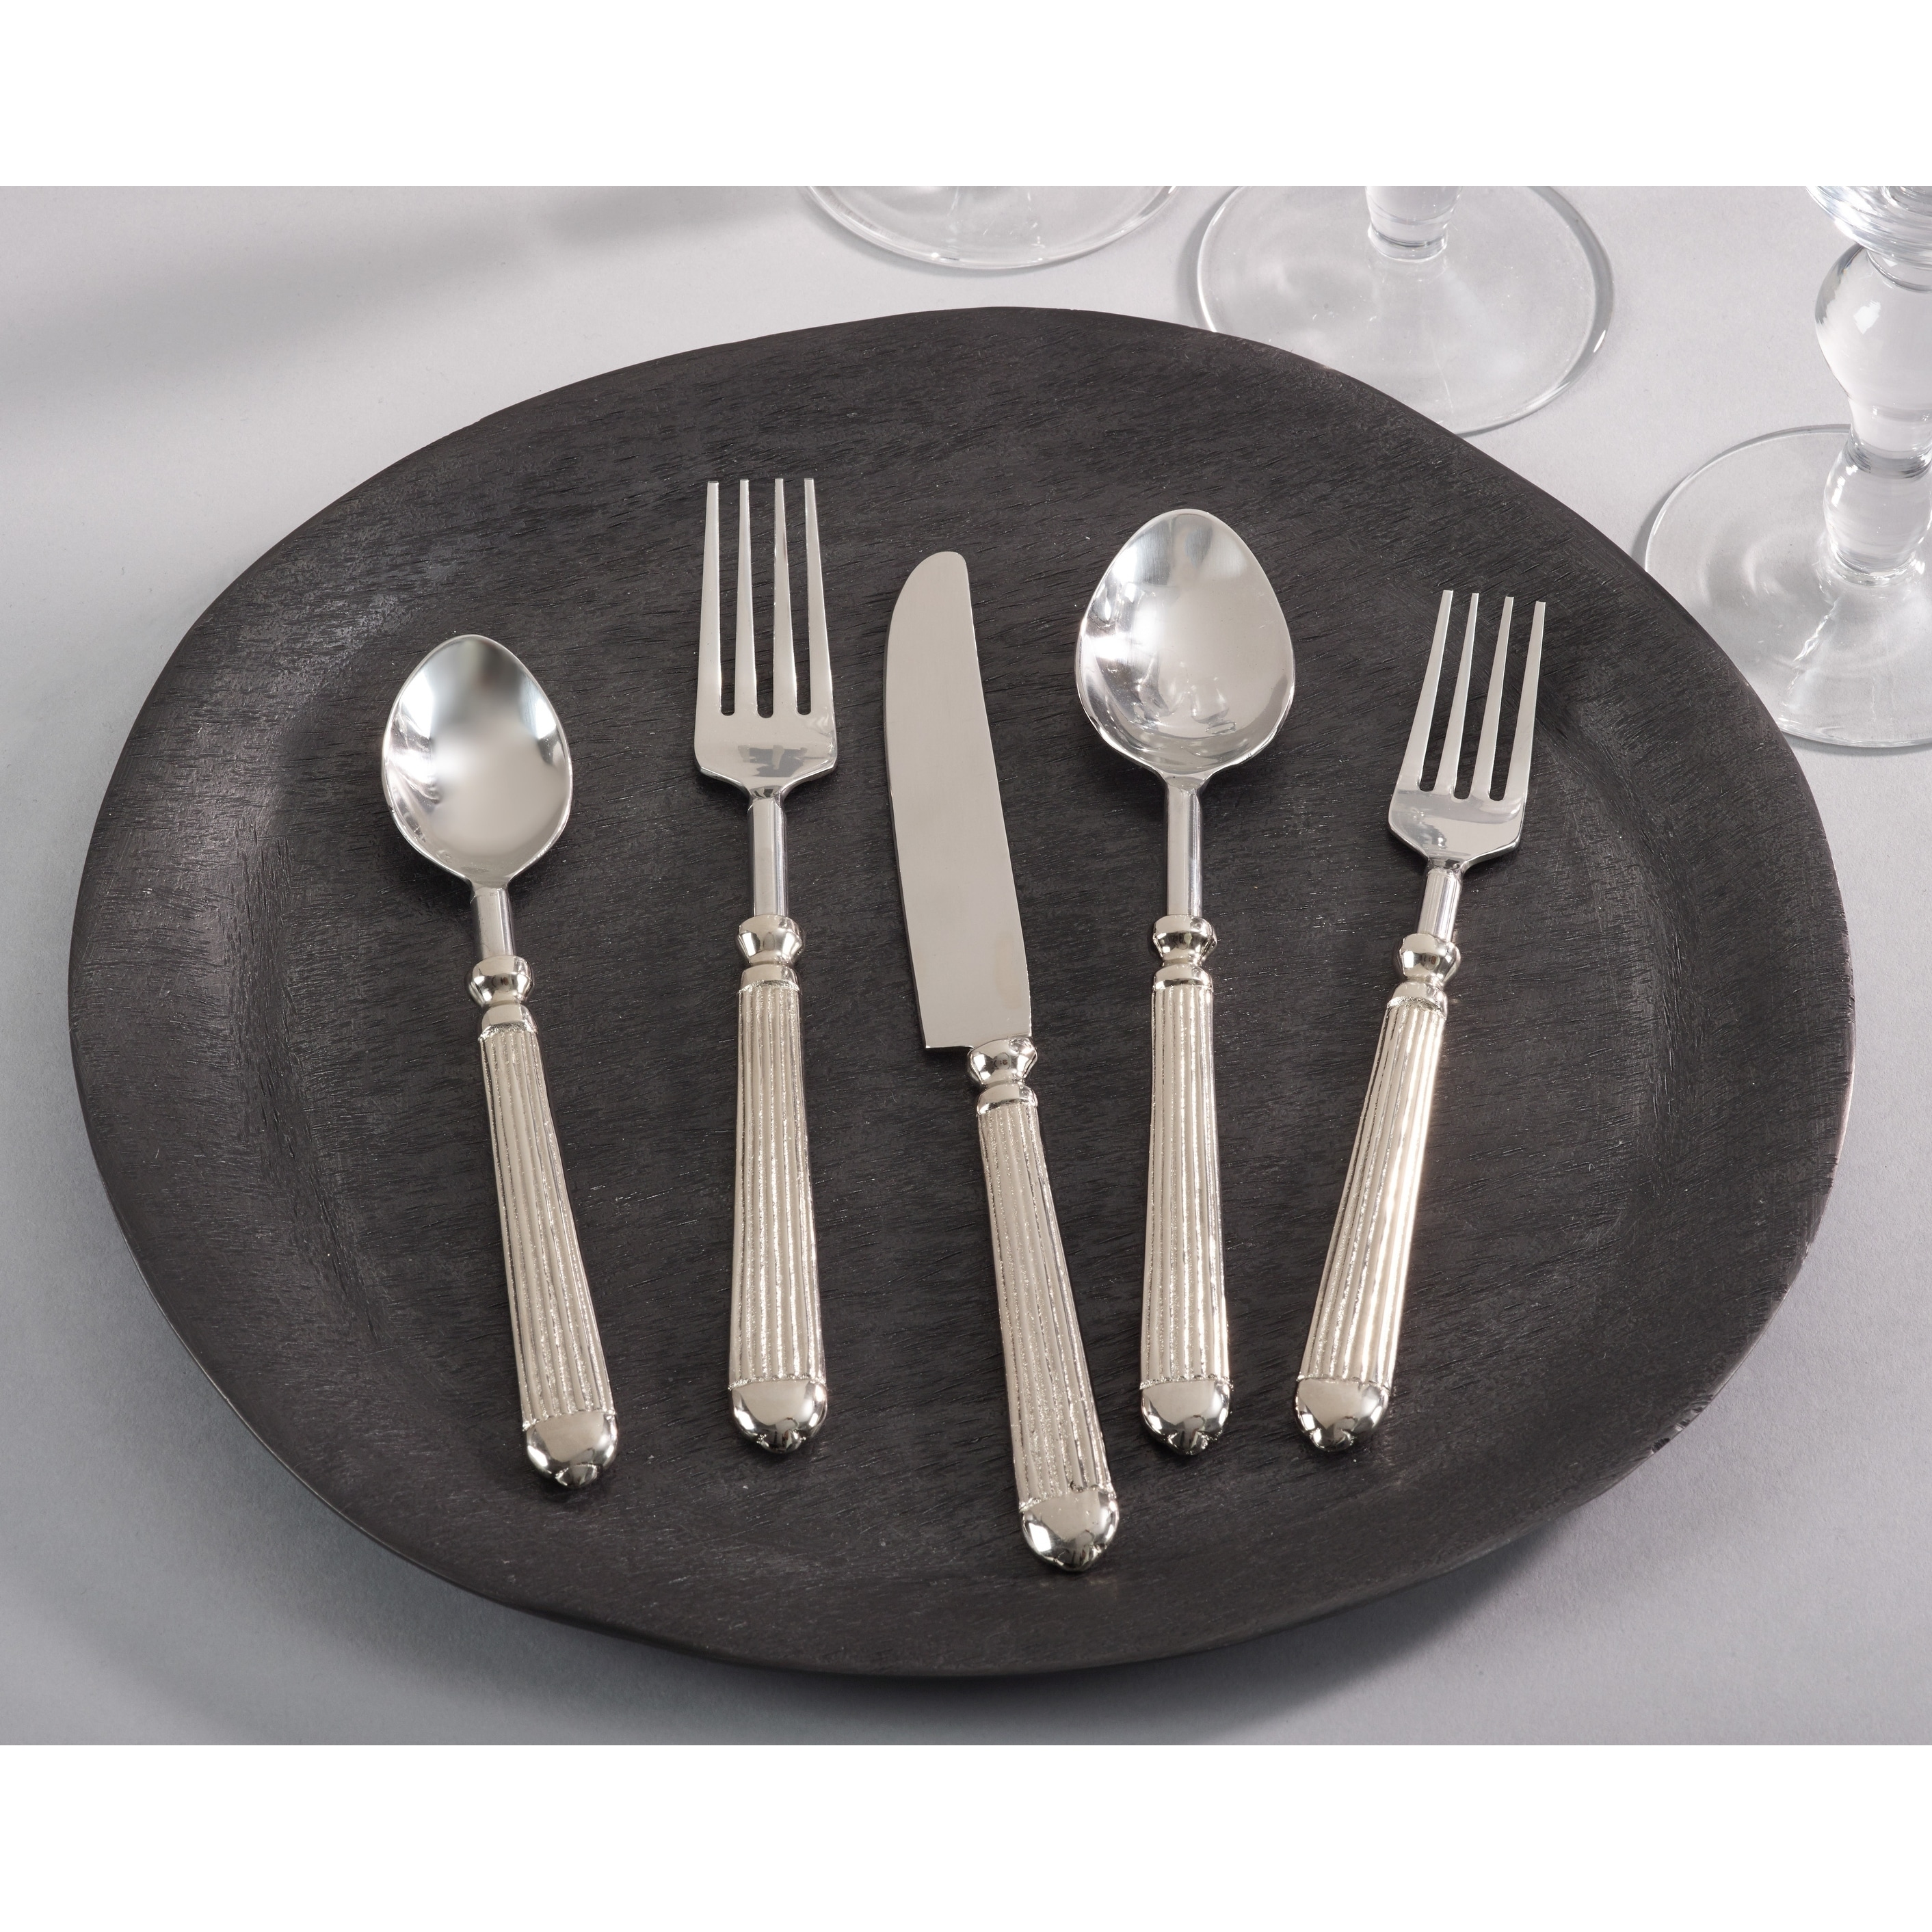 Best Deal On Silverware Buy Flatware Sets Online At Overstock Our Best